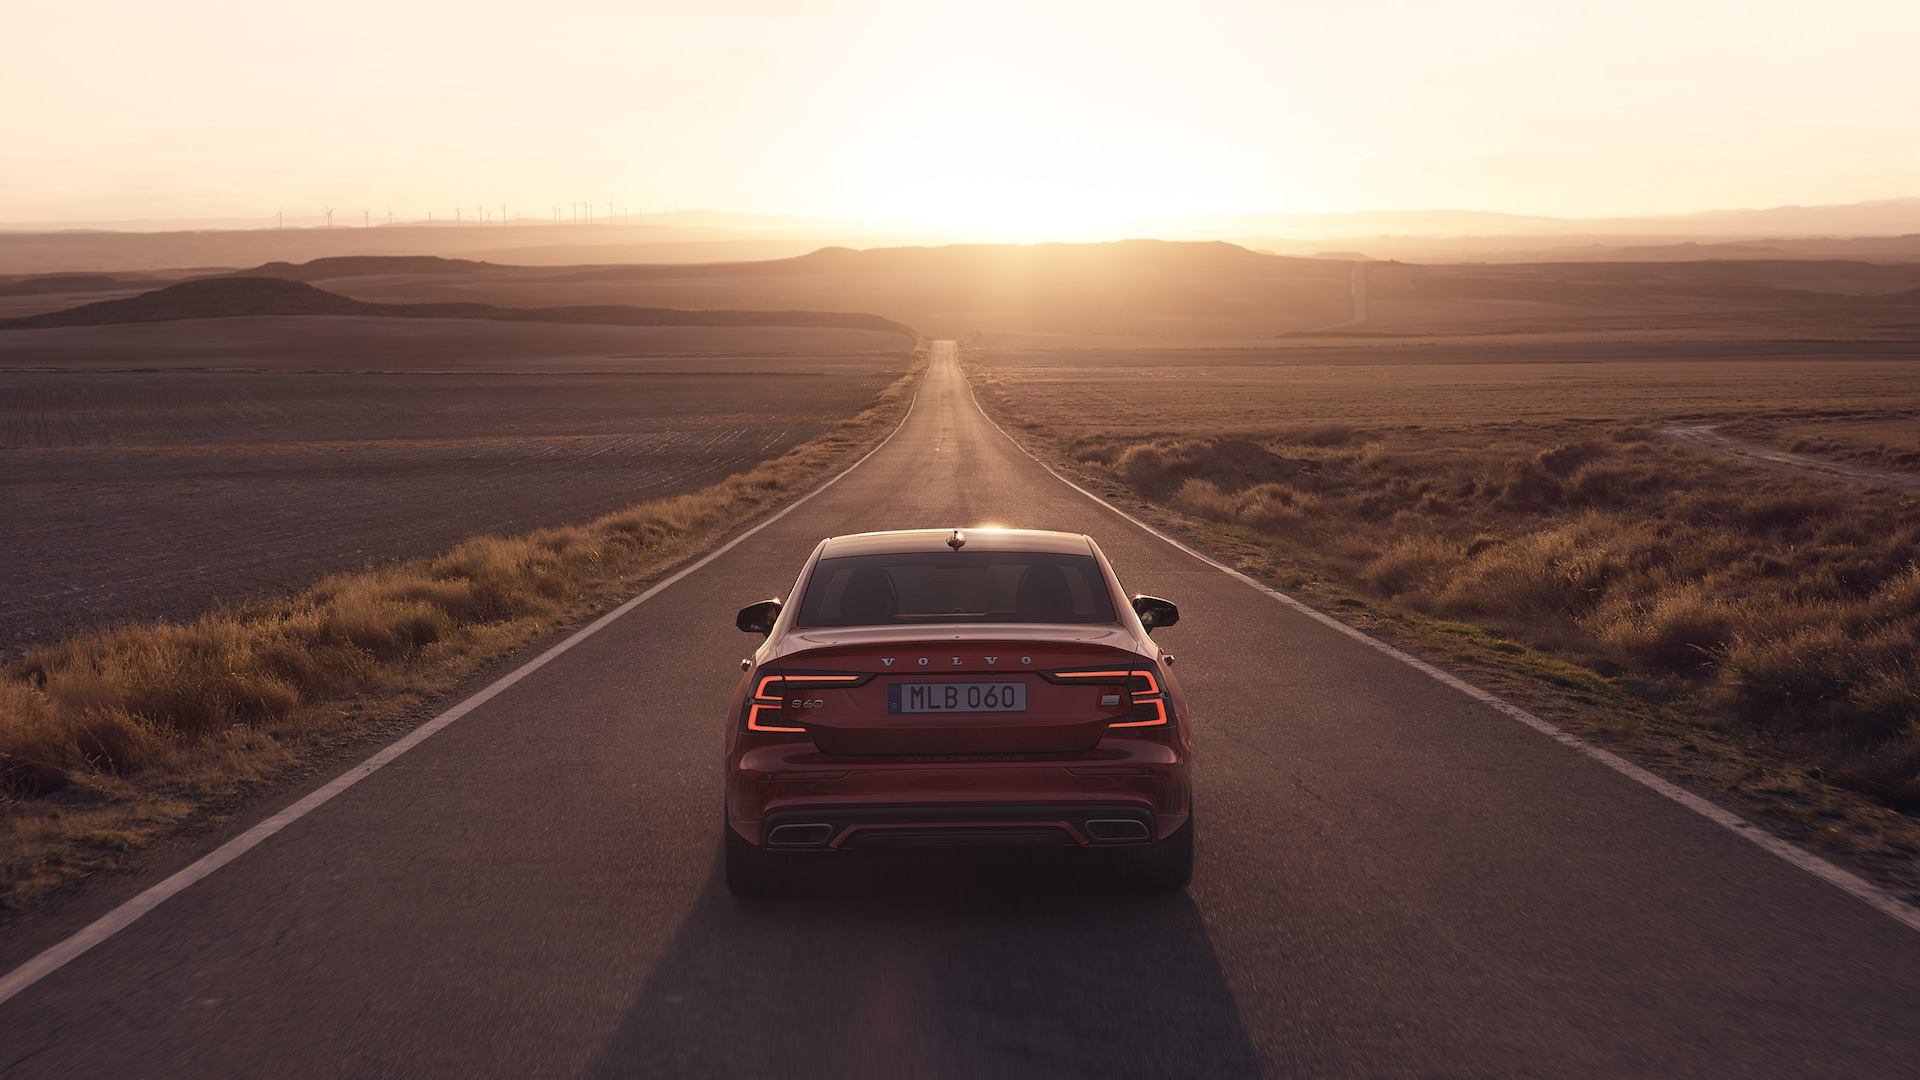 A red Volvo S60 Recharge driving on a road at sunset.